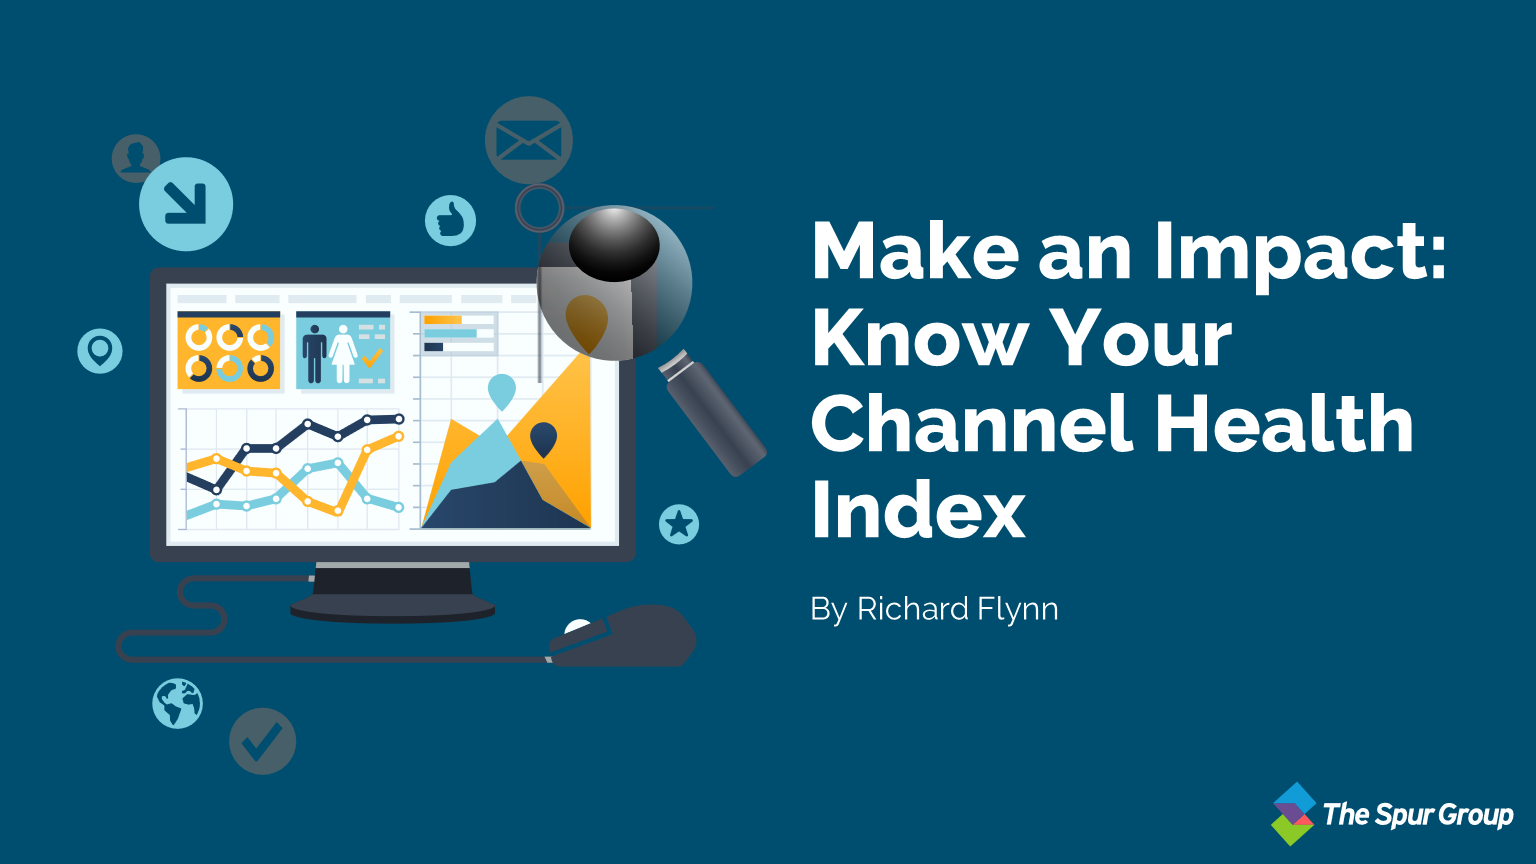 Make an Impact: Know Your Channel Health Index